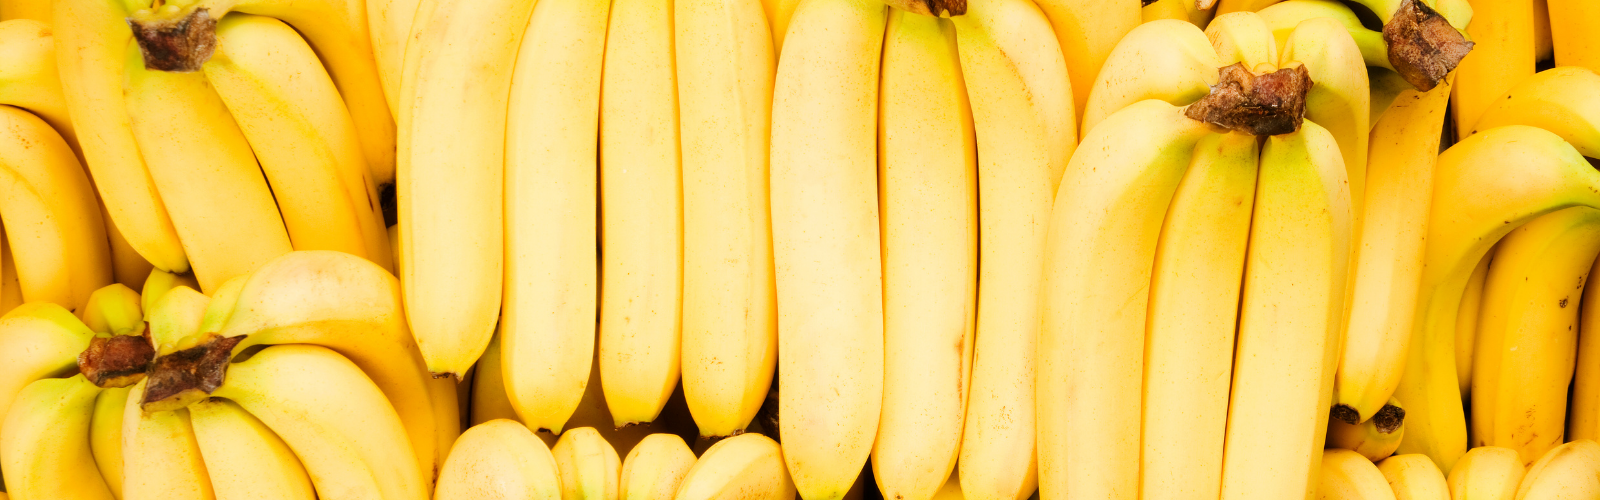 Bananas - Fruits to Increase Sperm Count and Motility